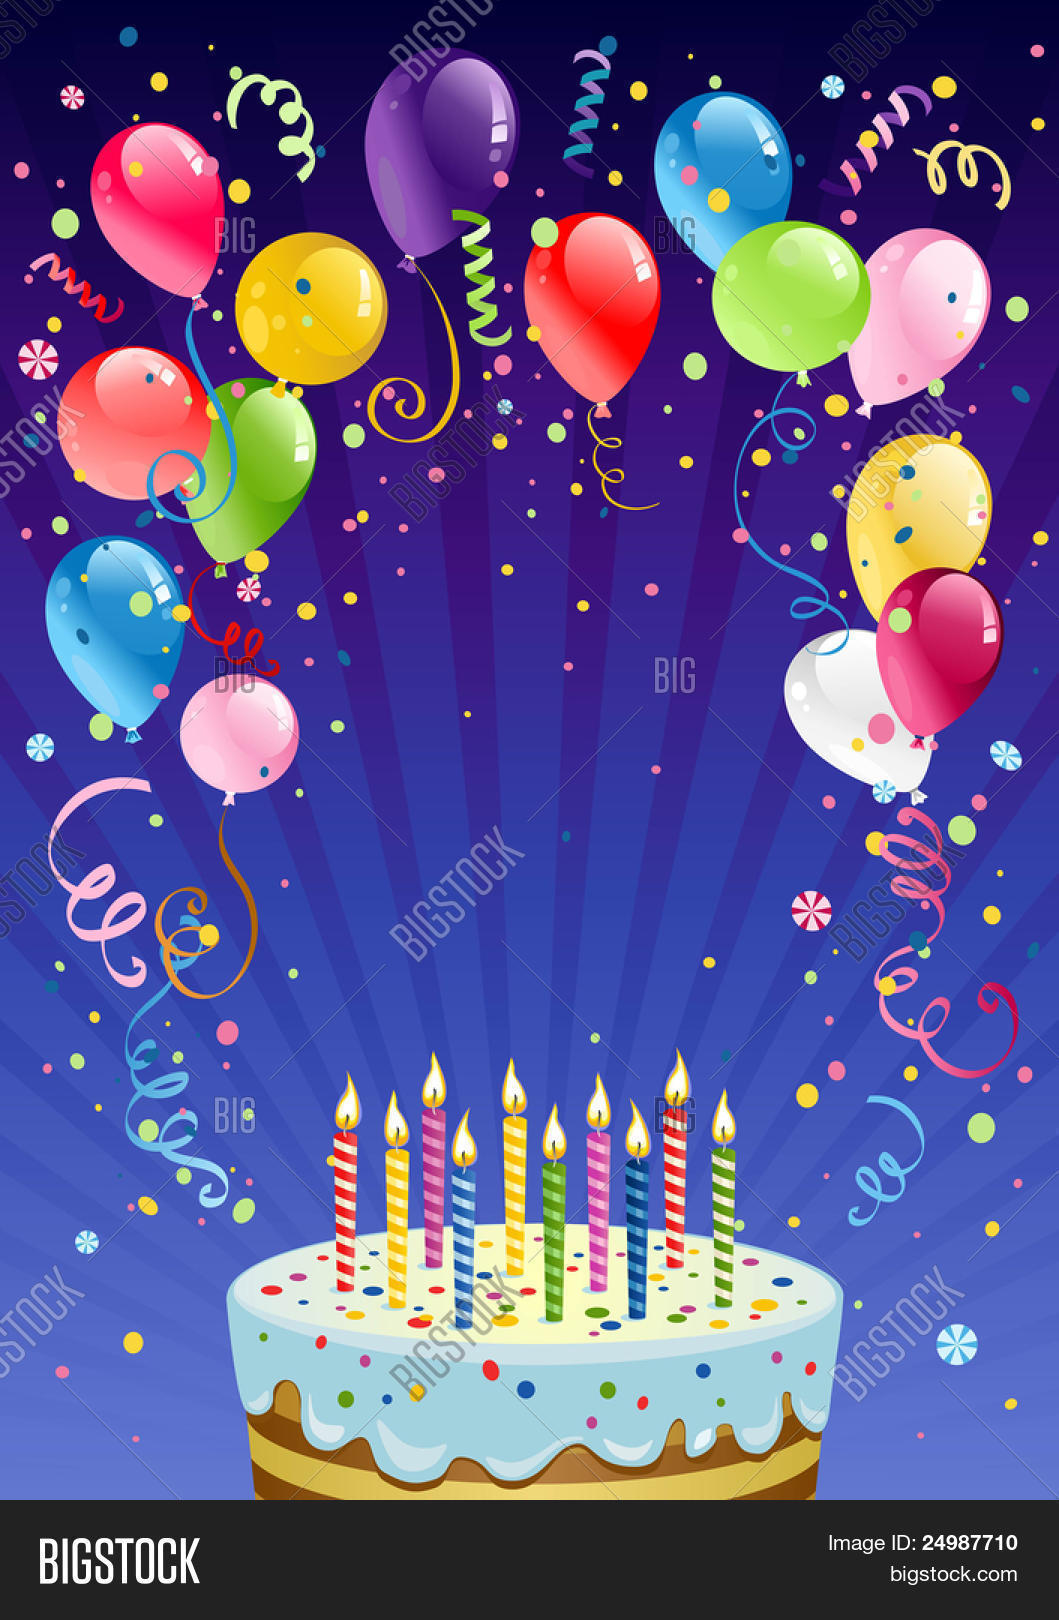 birthday background images hd ; 24987710